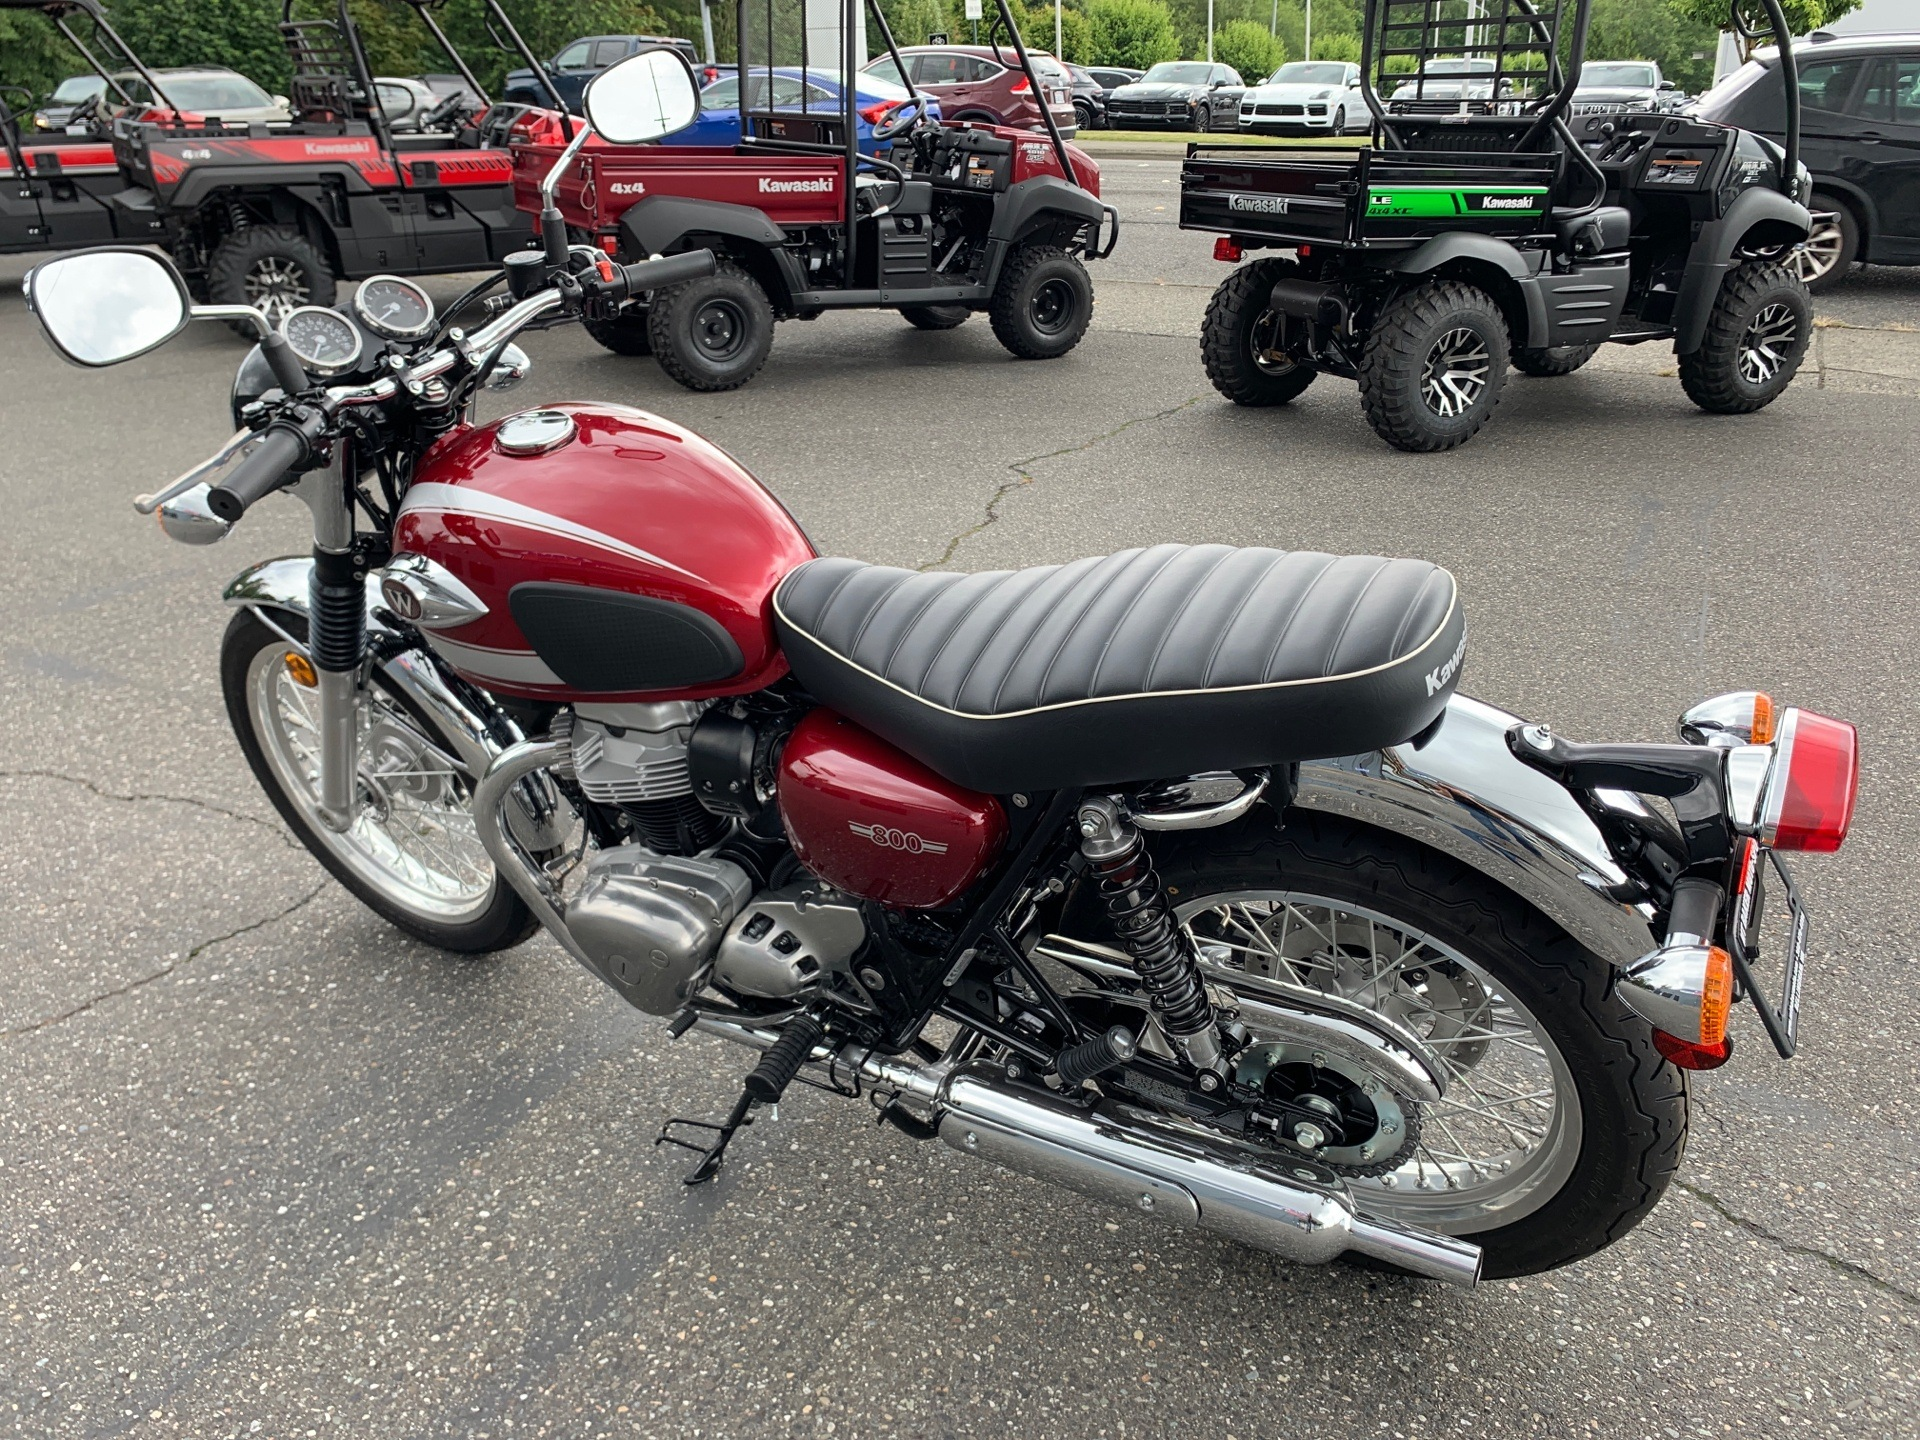 2020 Kawasaki W800 in Bellingham, Washington - Photo 7